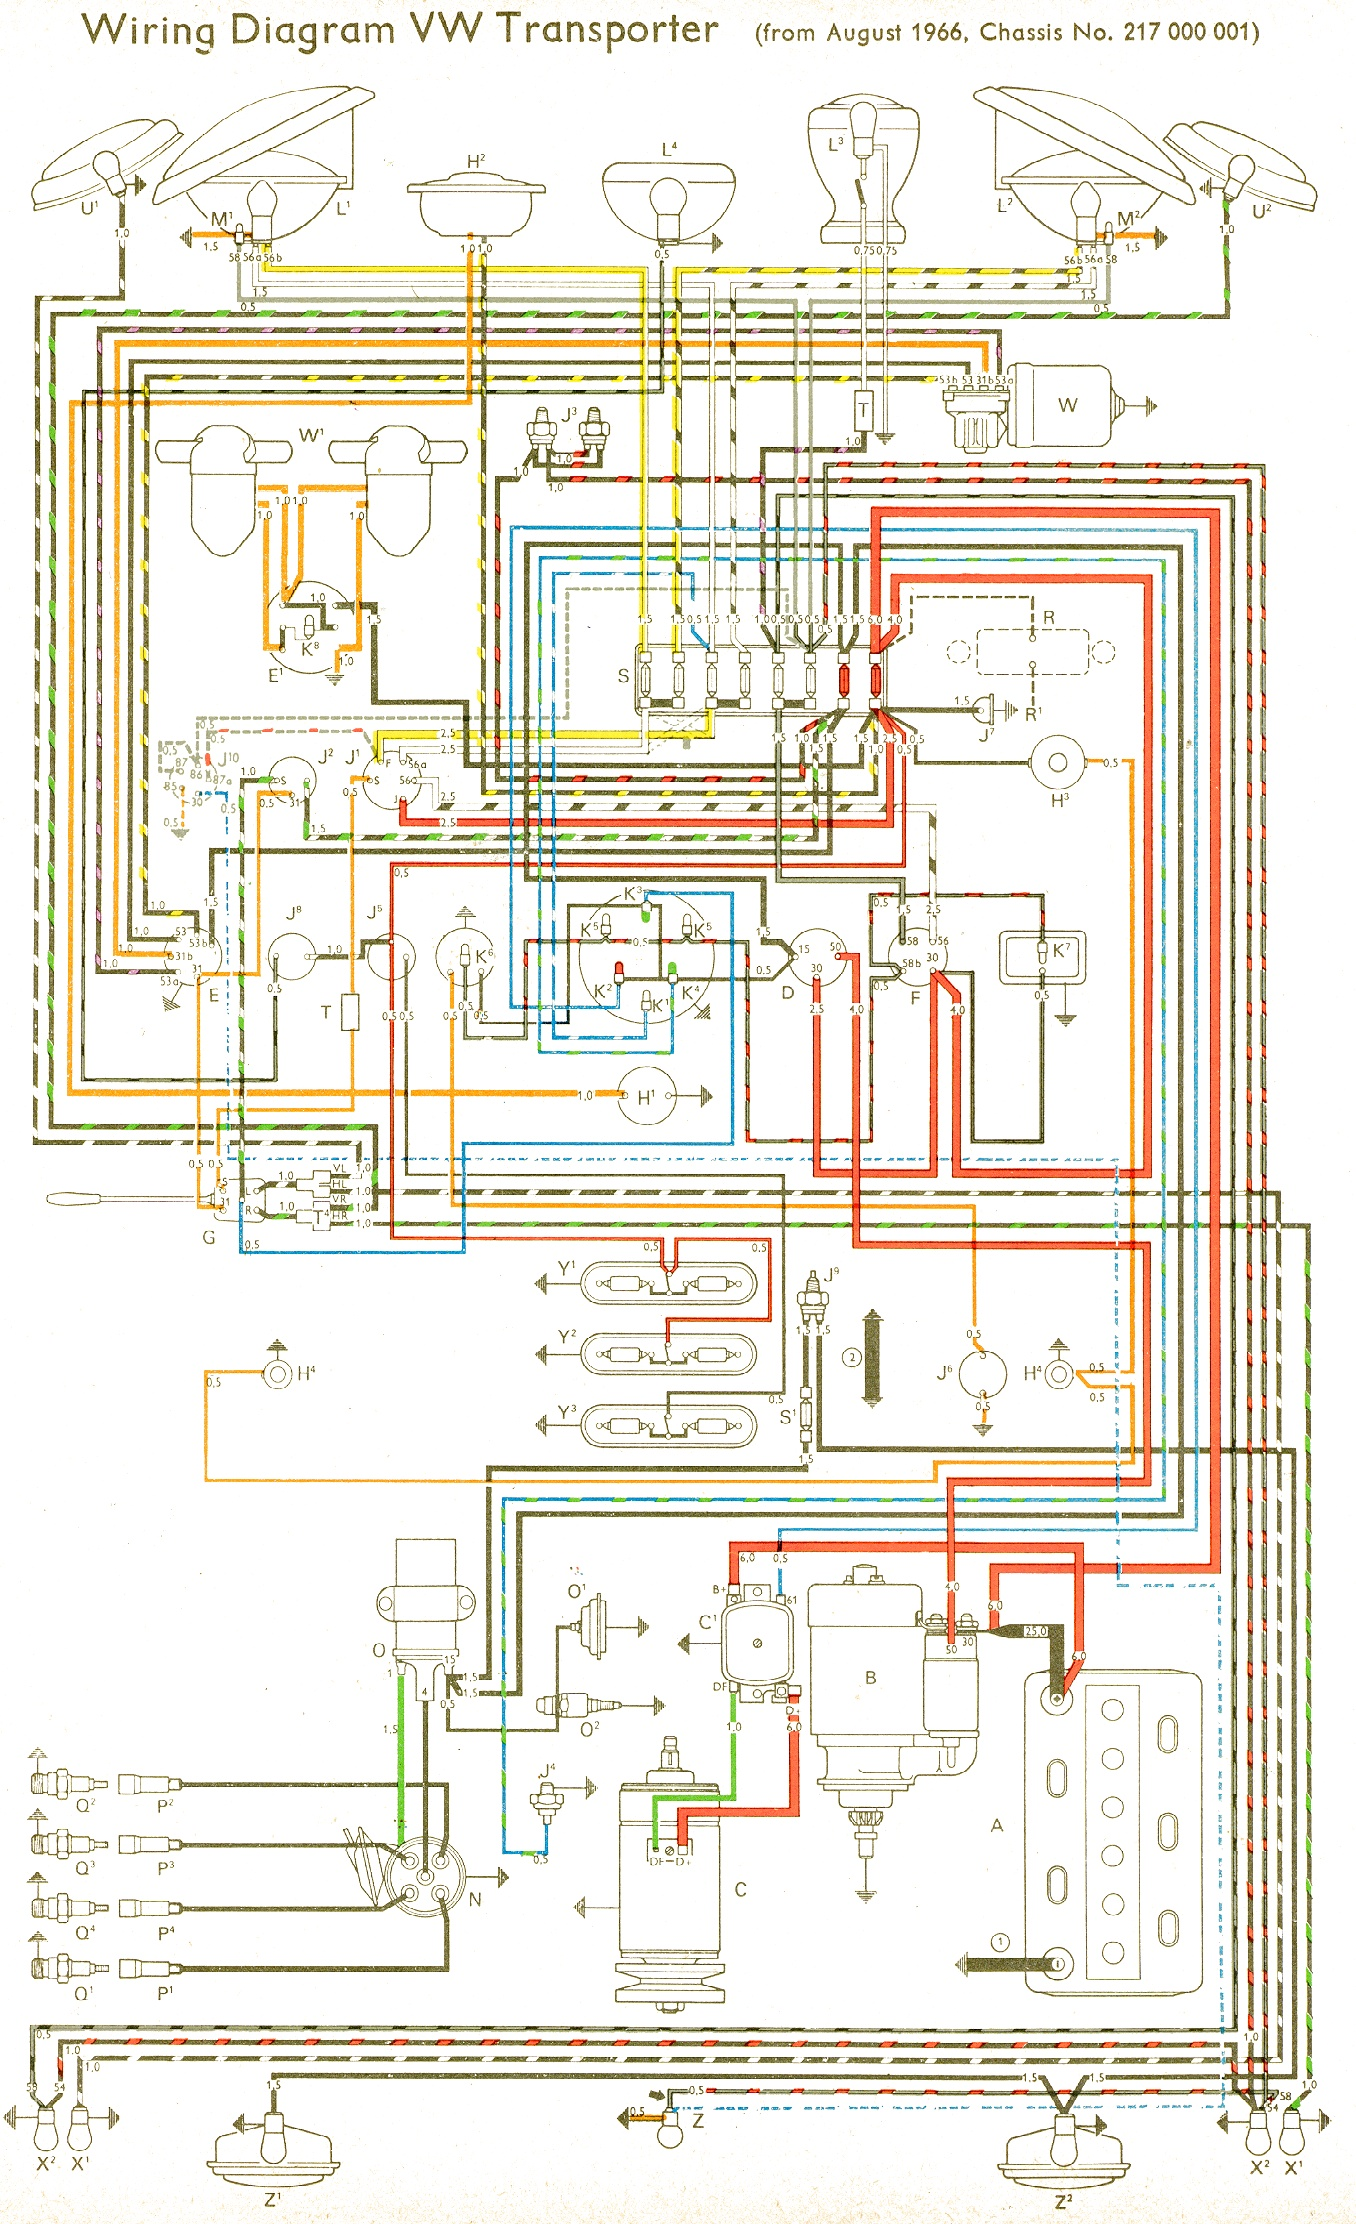 bus 66 bus wiring diagram vw wiring harness diagram \u2022 wiring diagrams j girardin bus wiring diagrams at crackthecode.co